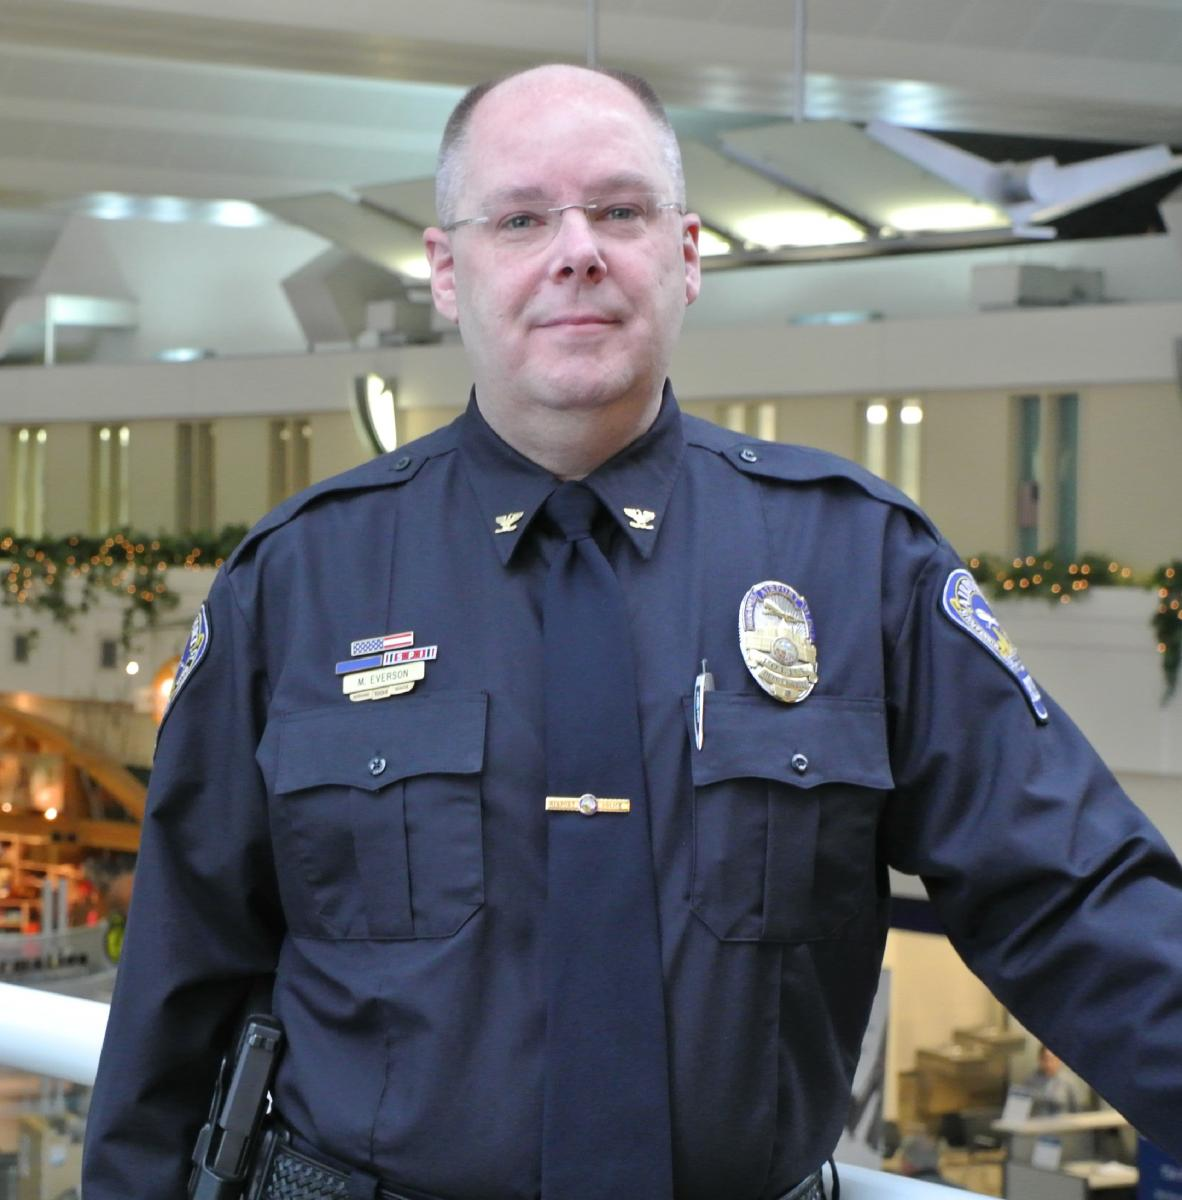 Mike Everson Named Police Chief At Msp My Msp Connect